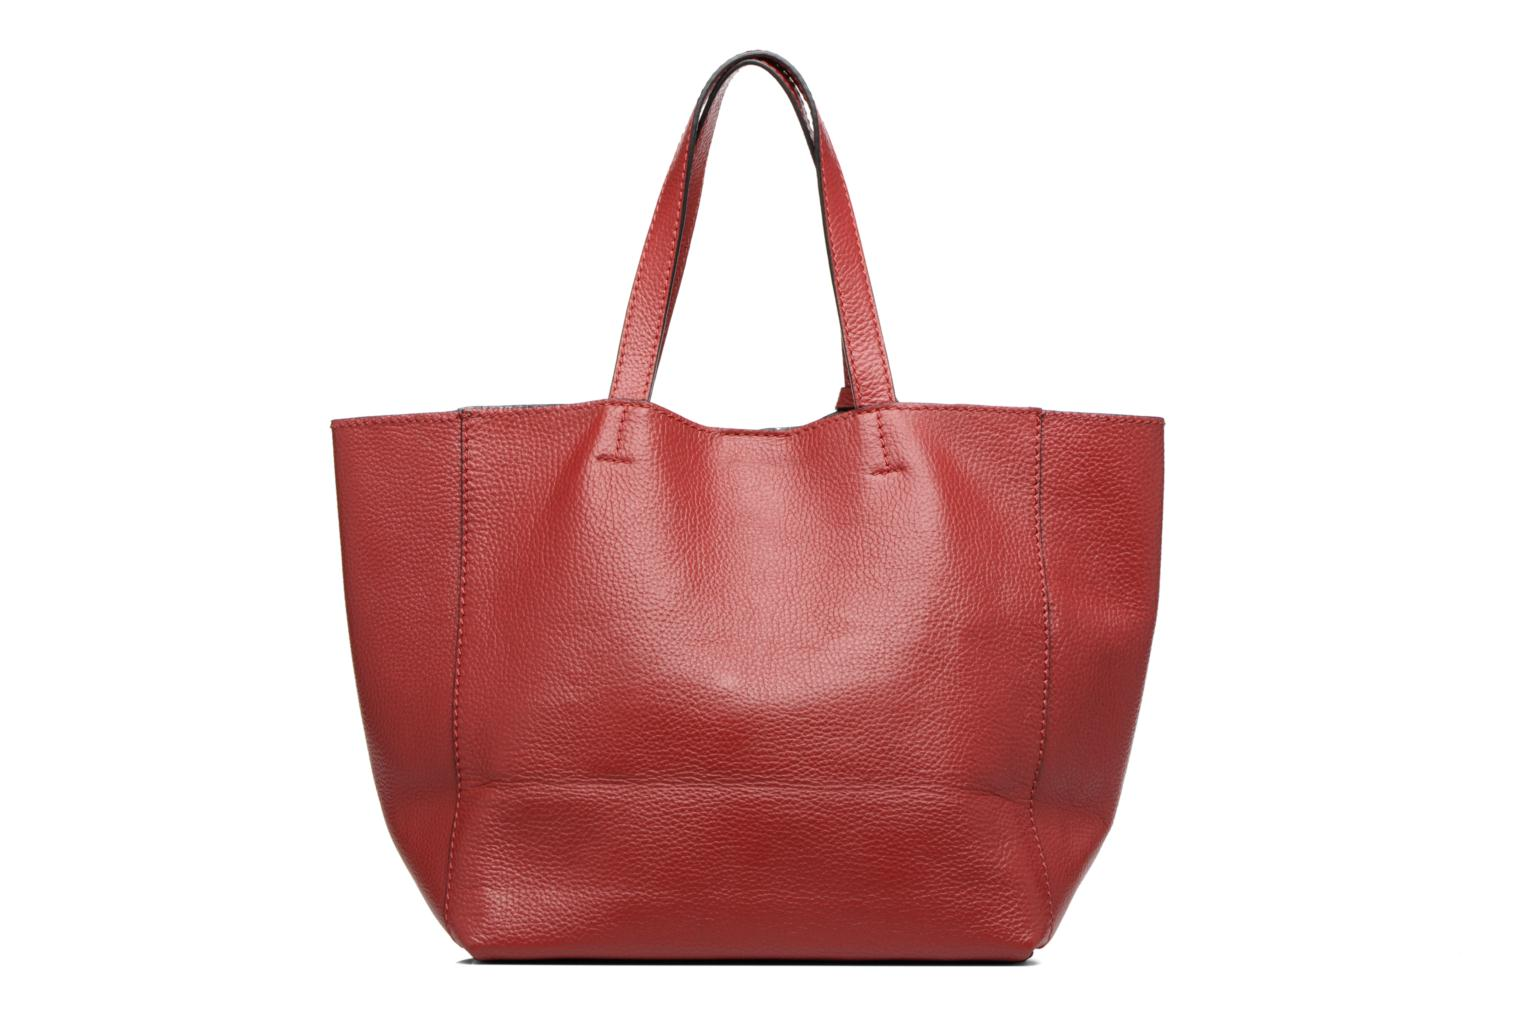 Handbags Loxwood Cabas Parisien Mm Red front view